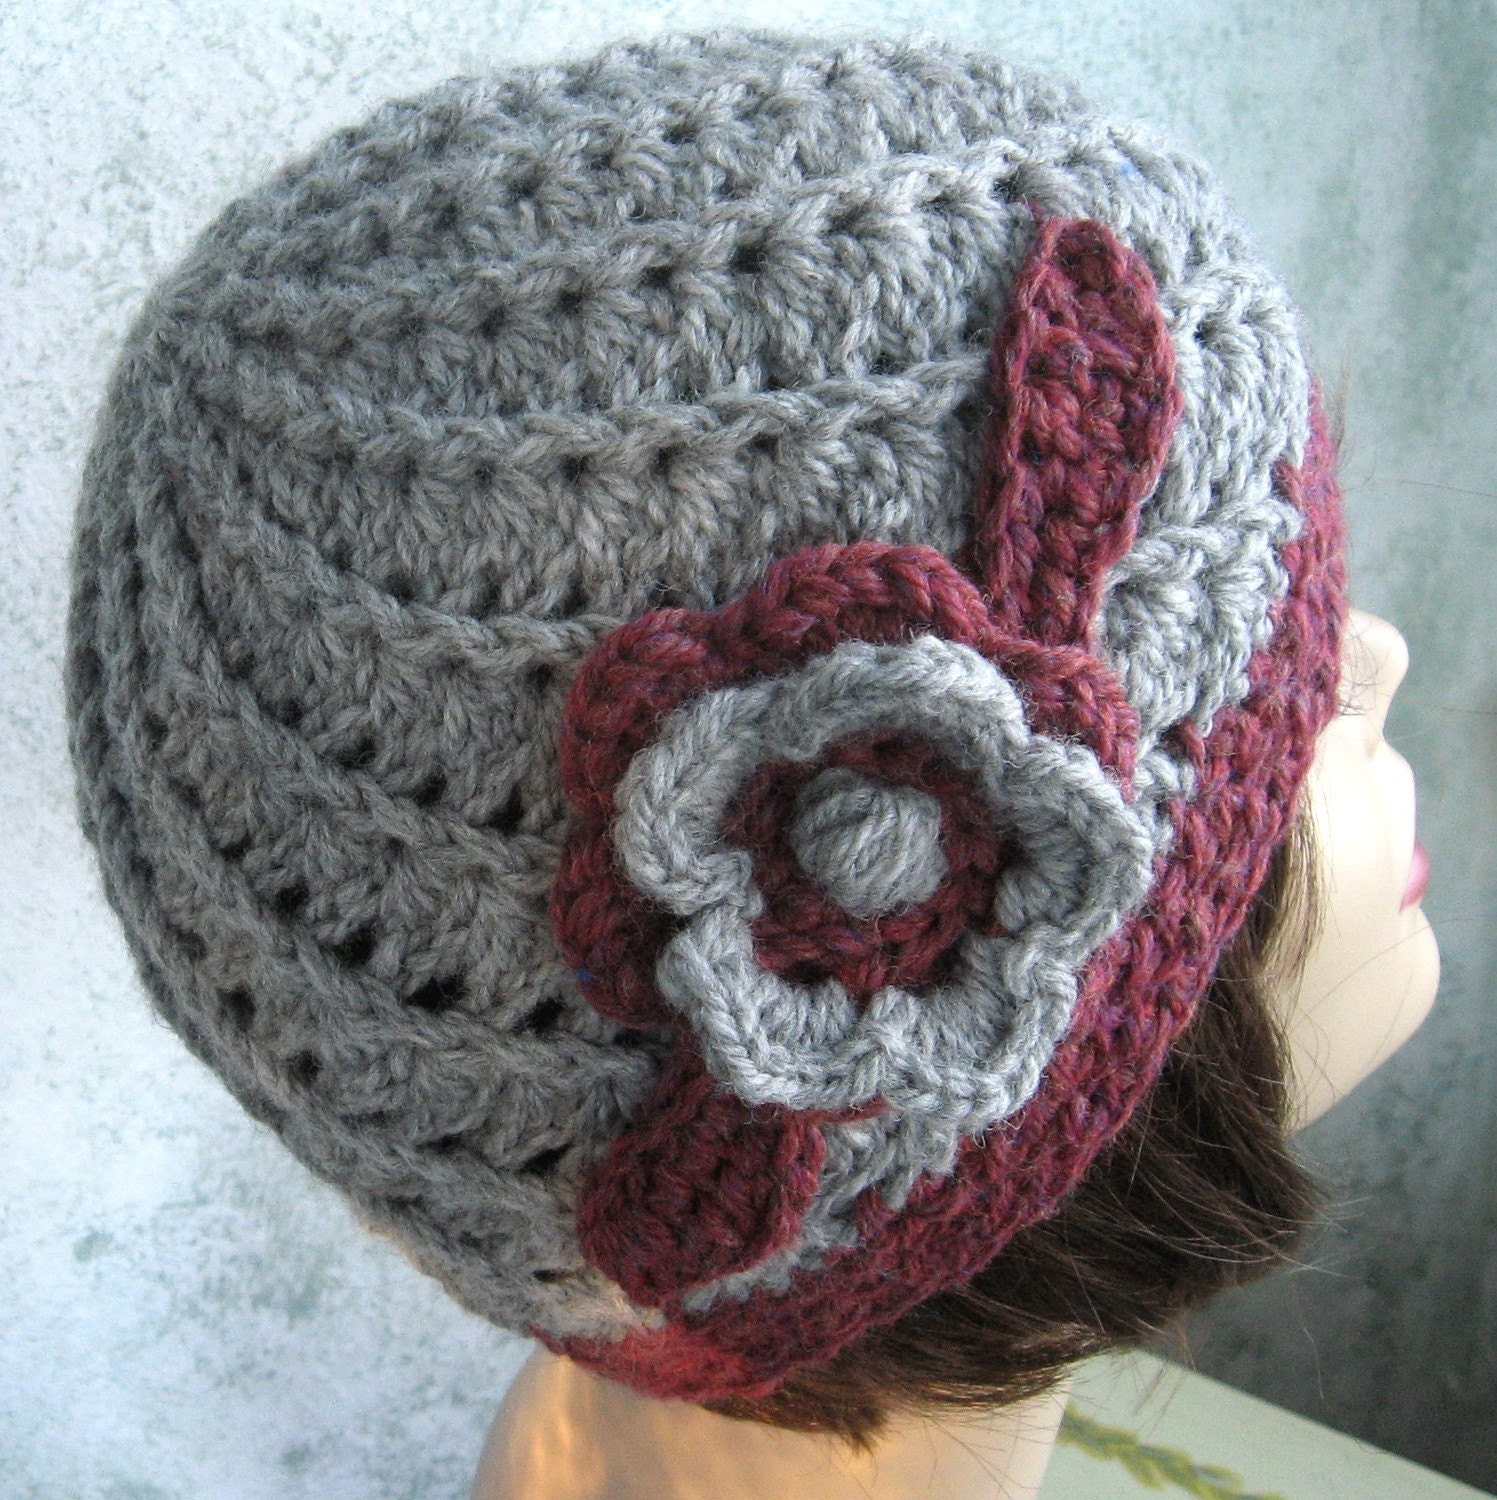 Crochet Pattern Womens Hat : Womens Crochet Hat Pattern Spiral Rib With Double Flower Trim